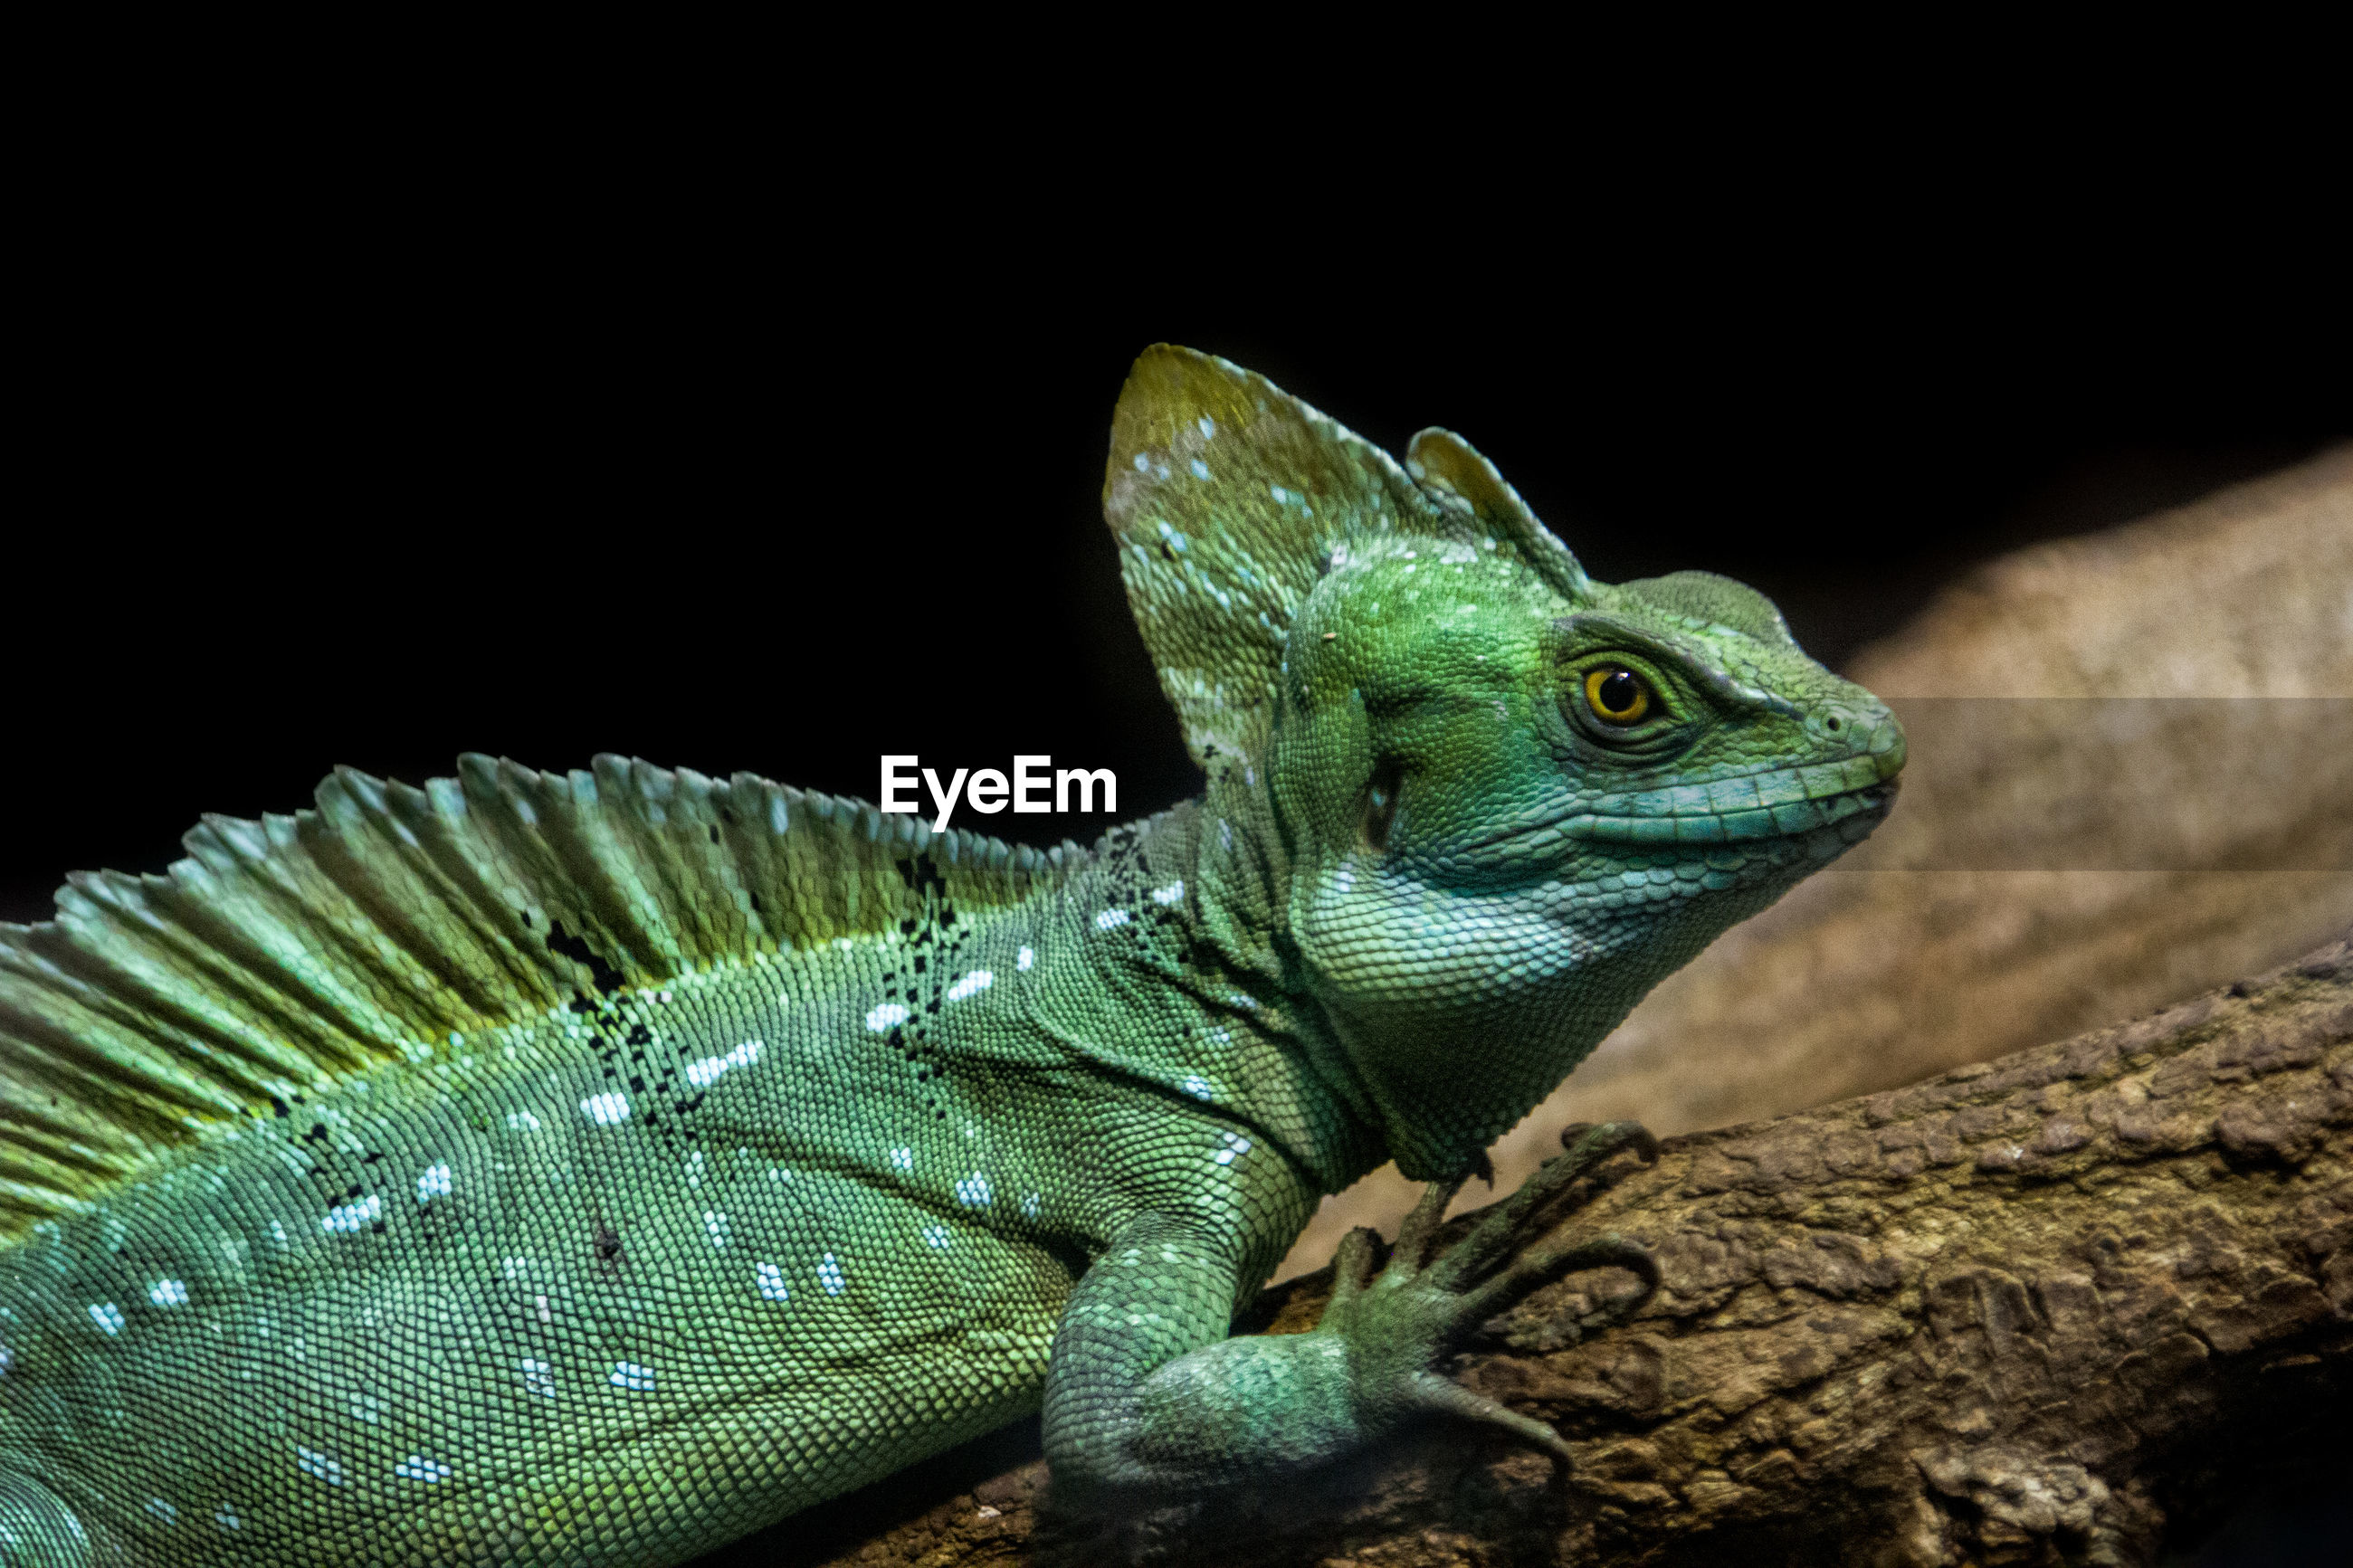 CLOSE-UP OF A LIZARD ON BLACK BACKGROUND